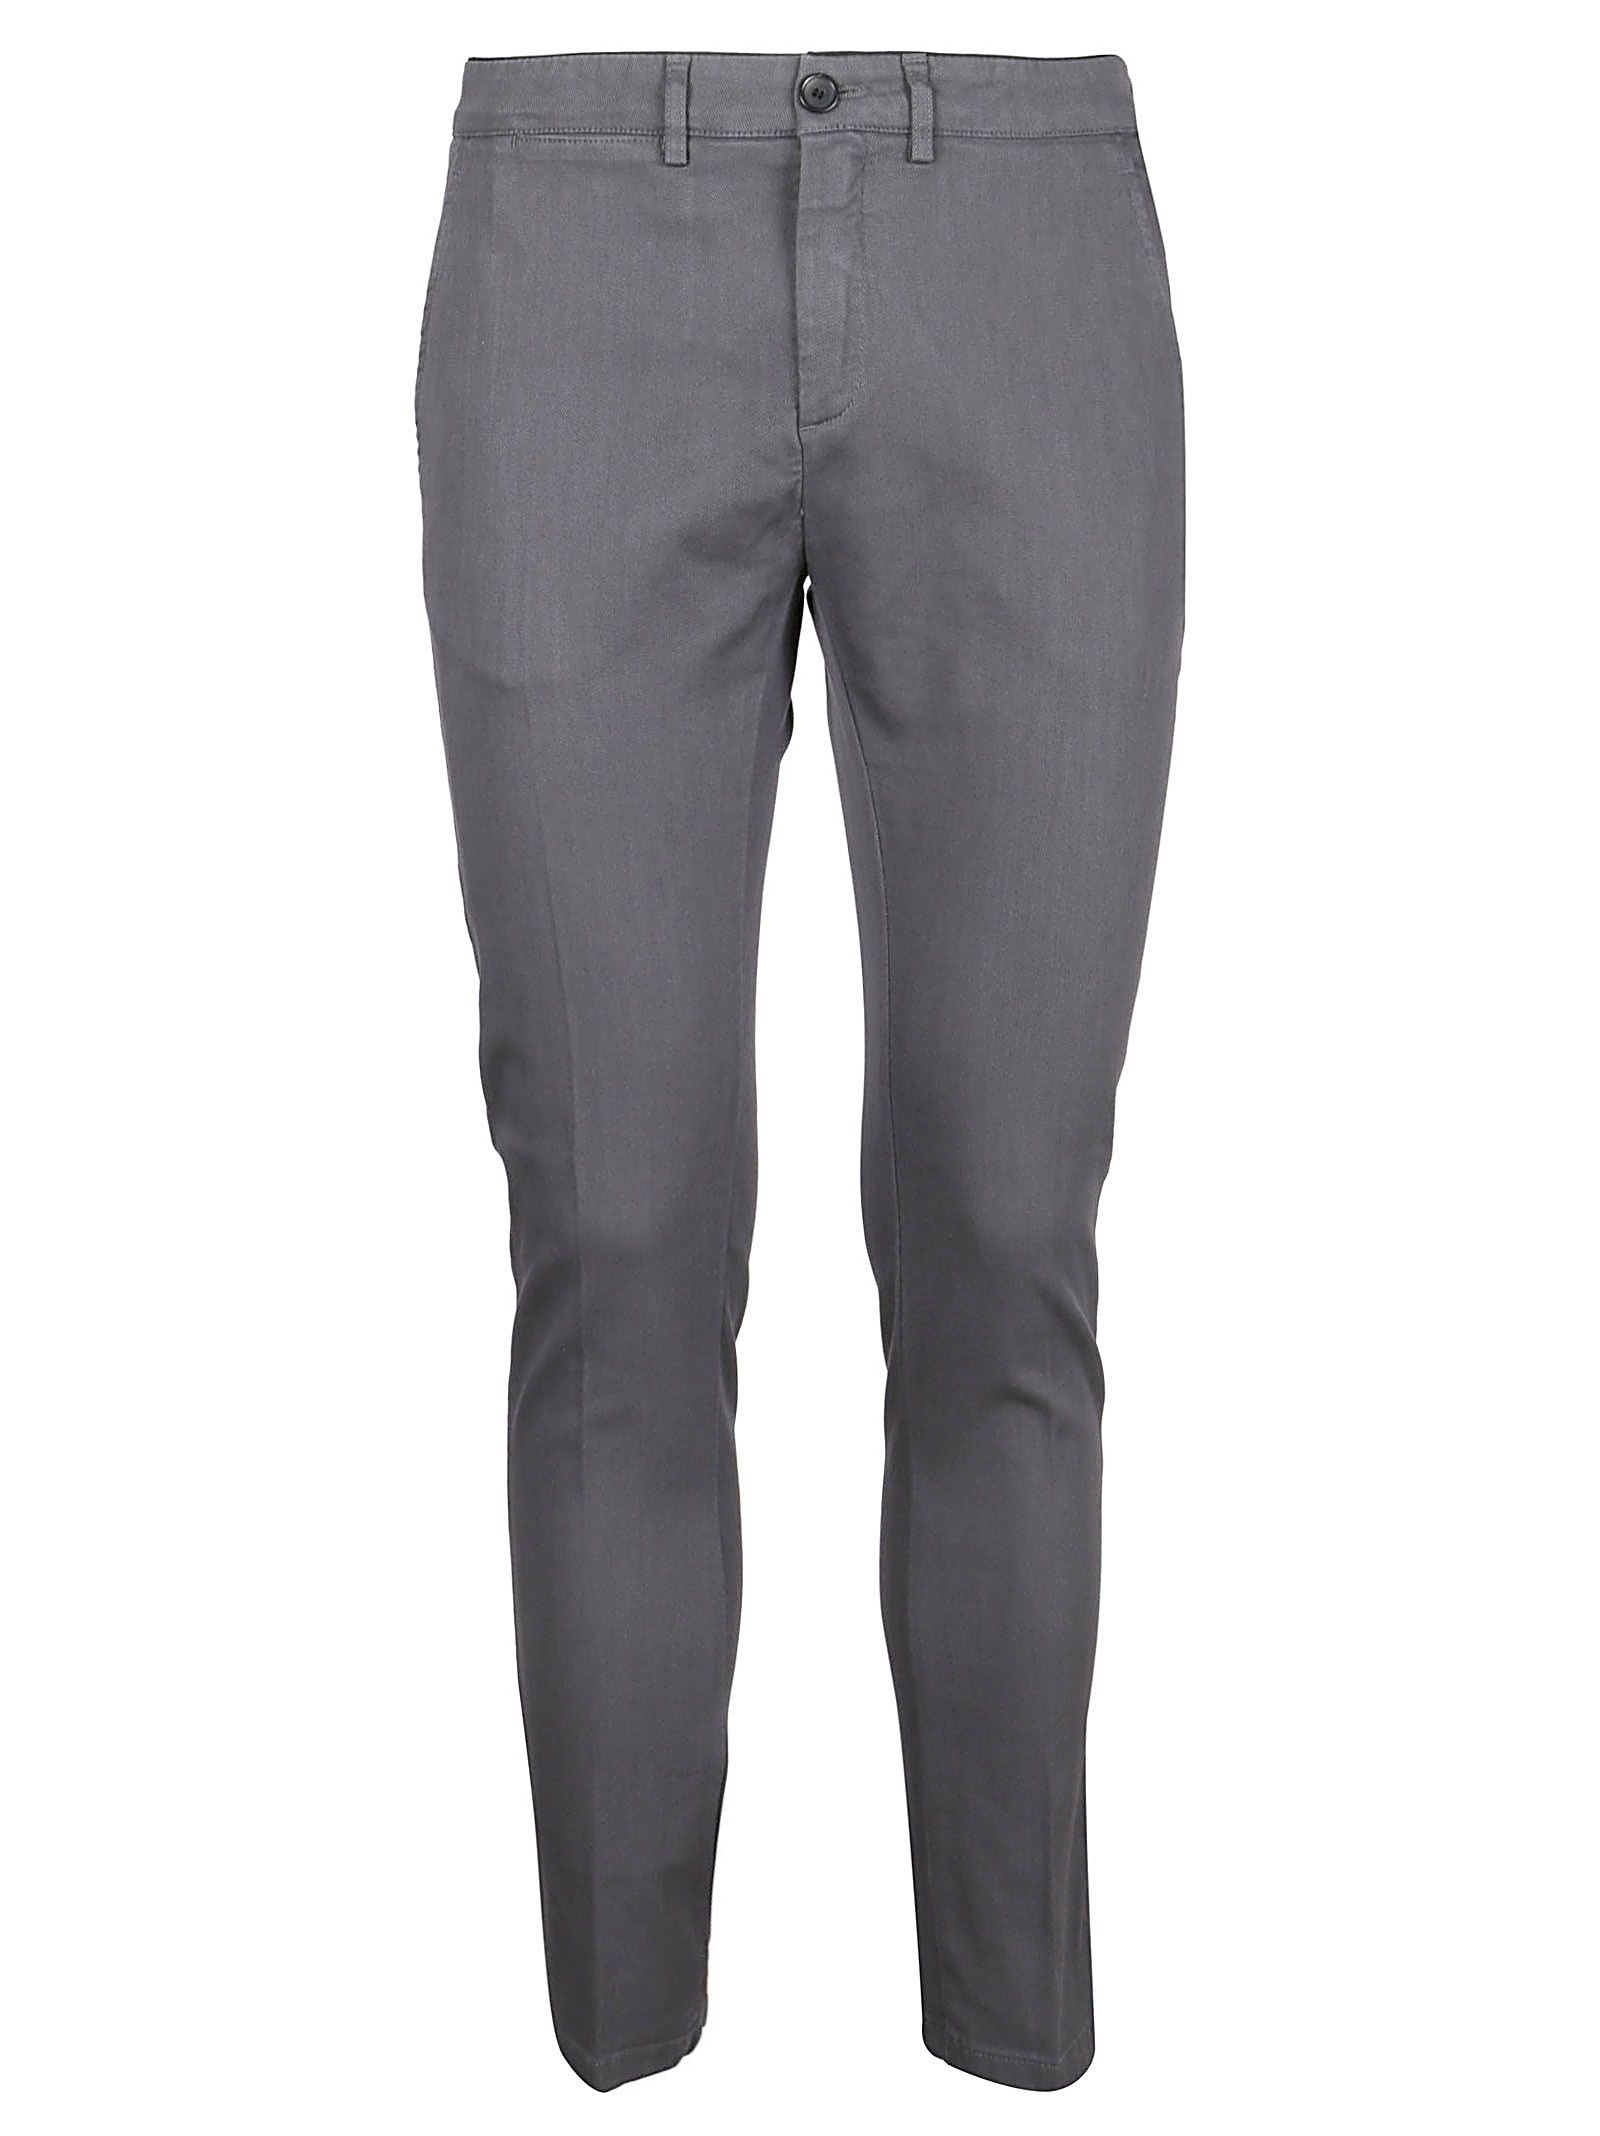 DEPARTMENT FIVE MEN'S U19P02T1904VE130 GREY COTTON PANTS